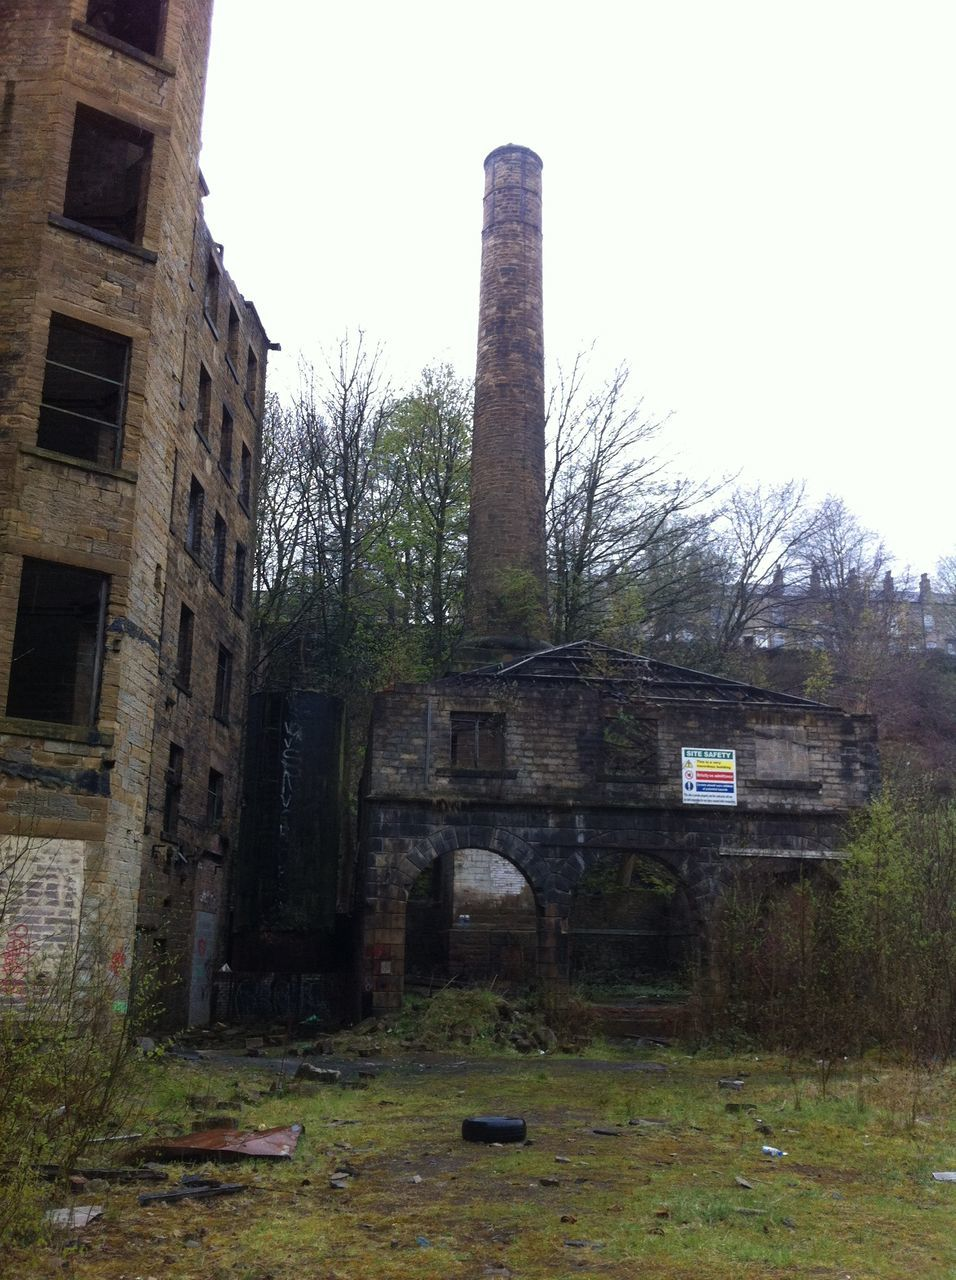 Smoke Stack In Abandoned Factory Against Sky